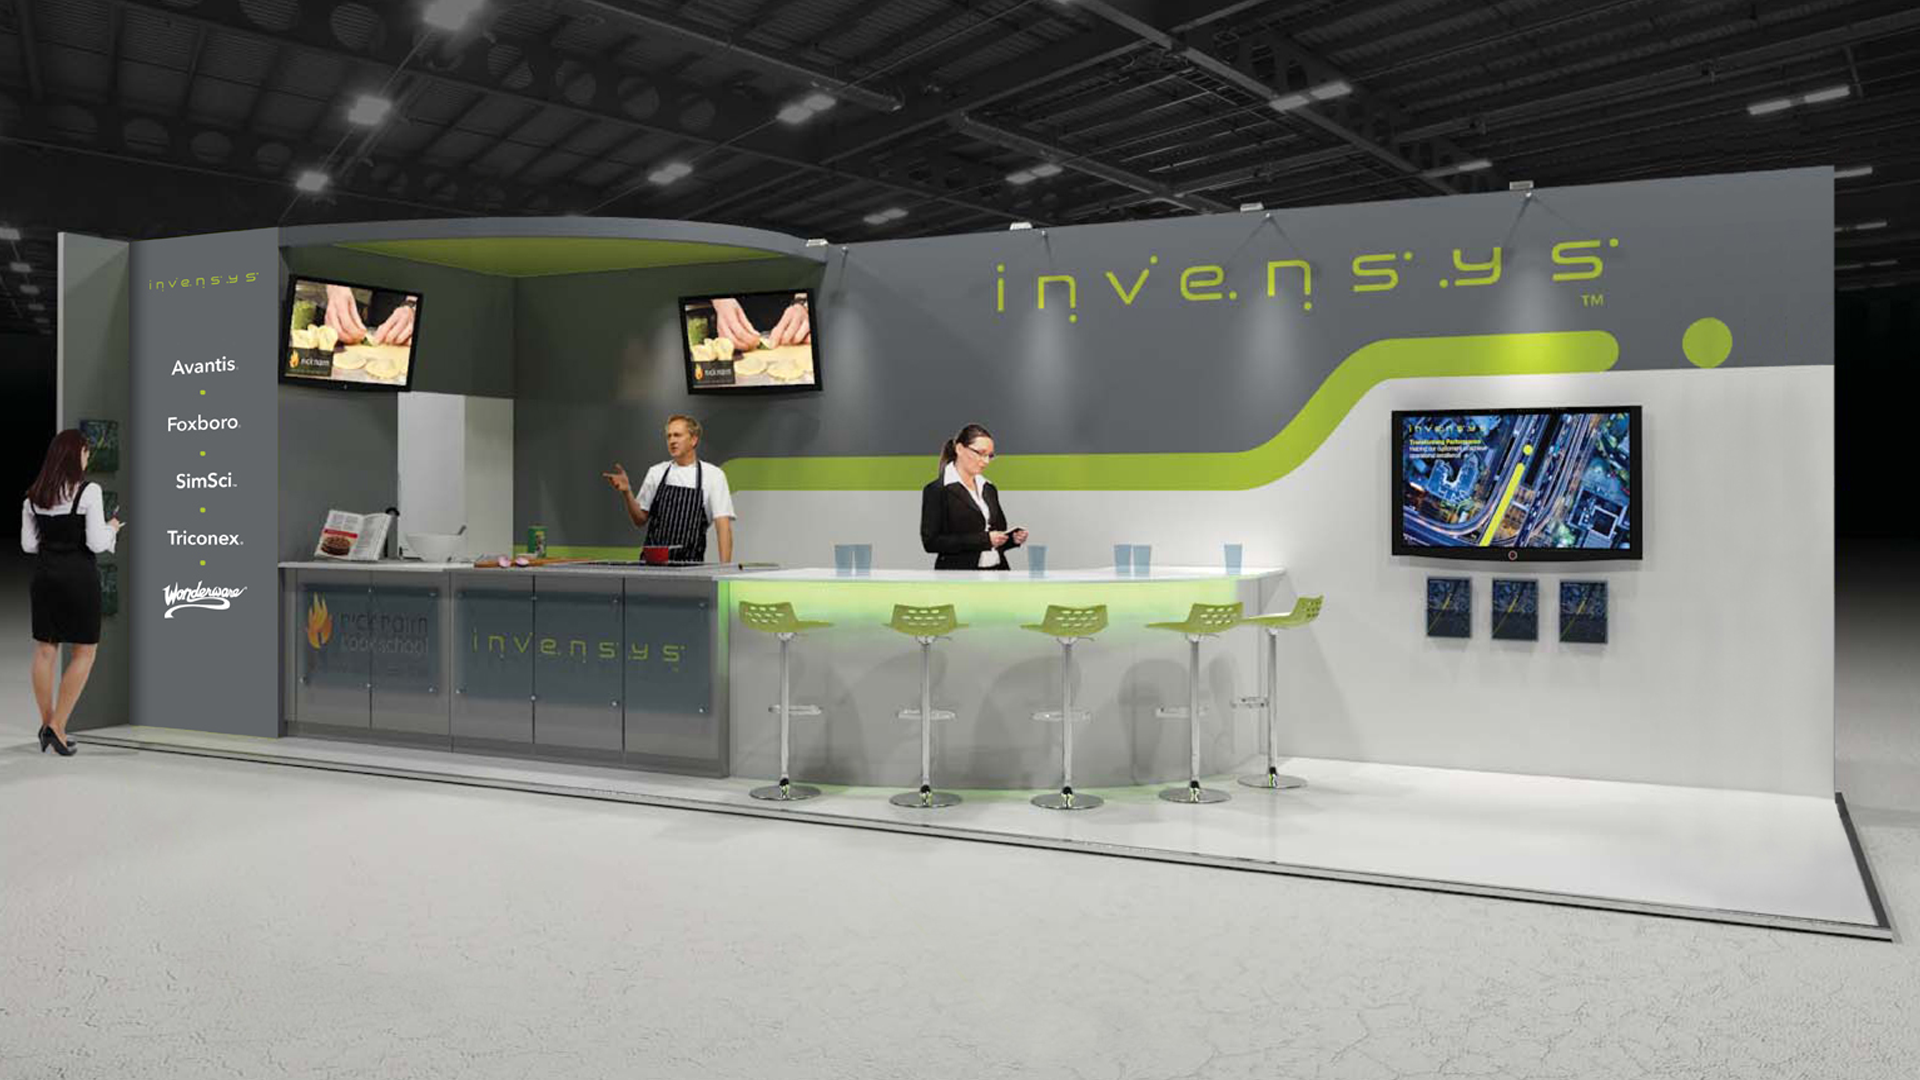 invensys exhibition stand